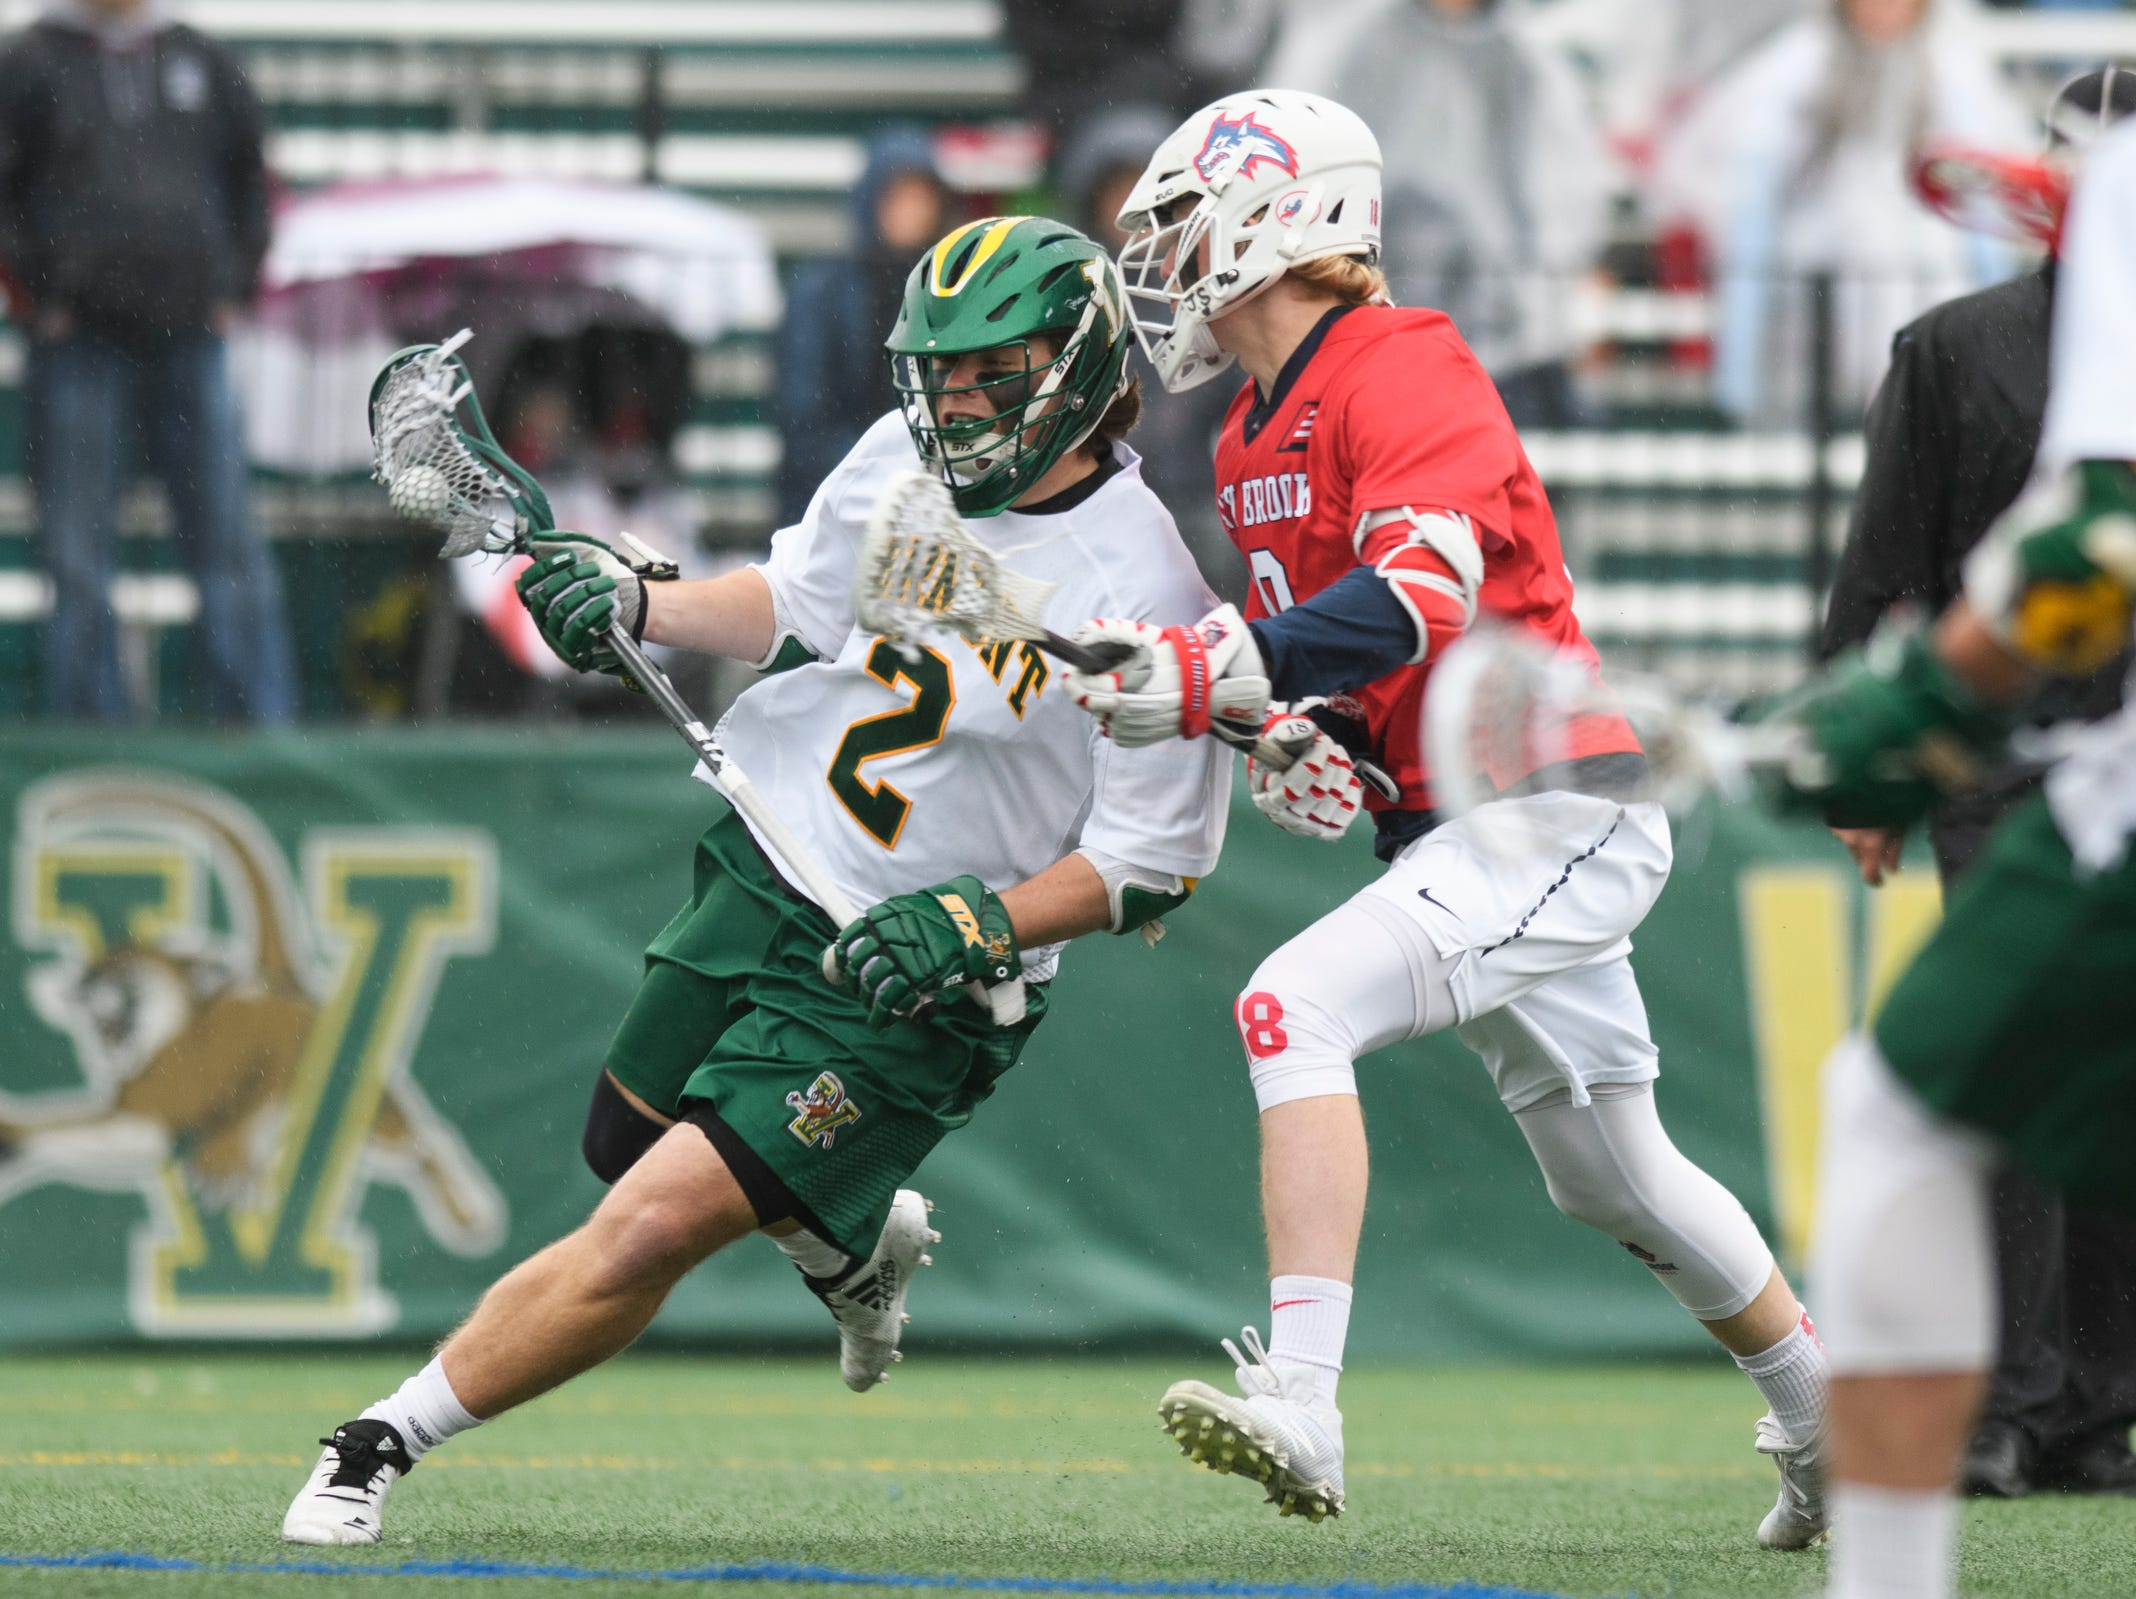 Vermont's Jack Knight (2) runs past Stony Brook's Harrison Matsuoka (18) with the ball during the men's lacrosse game between the Stony Brook Sea Wolves and the Vermont Catamounts at Virtue Field on Saturday afternoon April 20, 2019 in Burlington, Vermont.